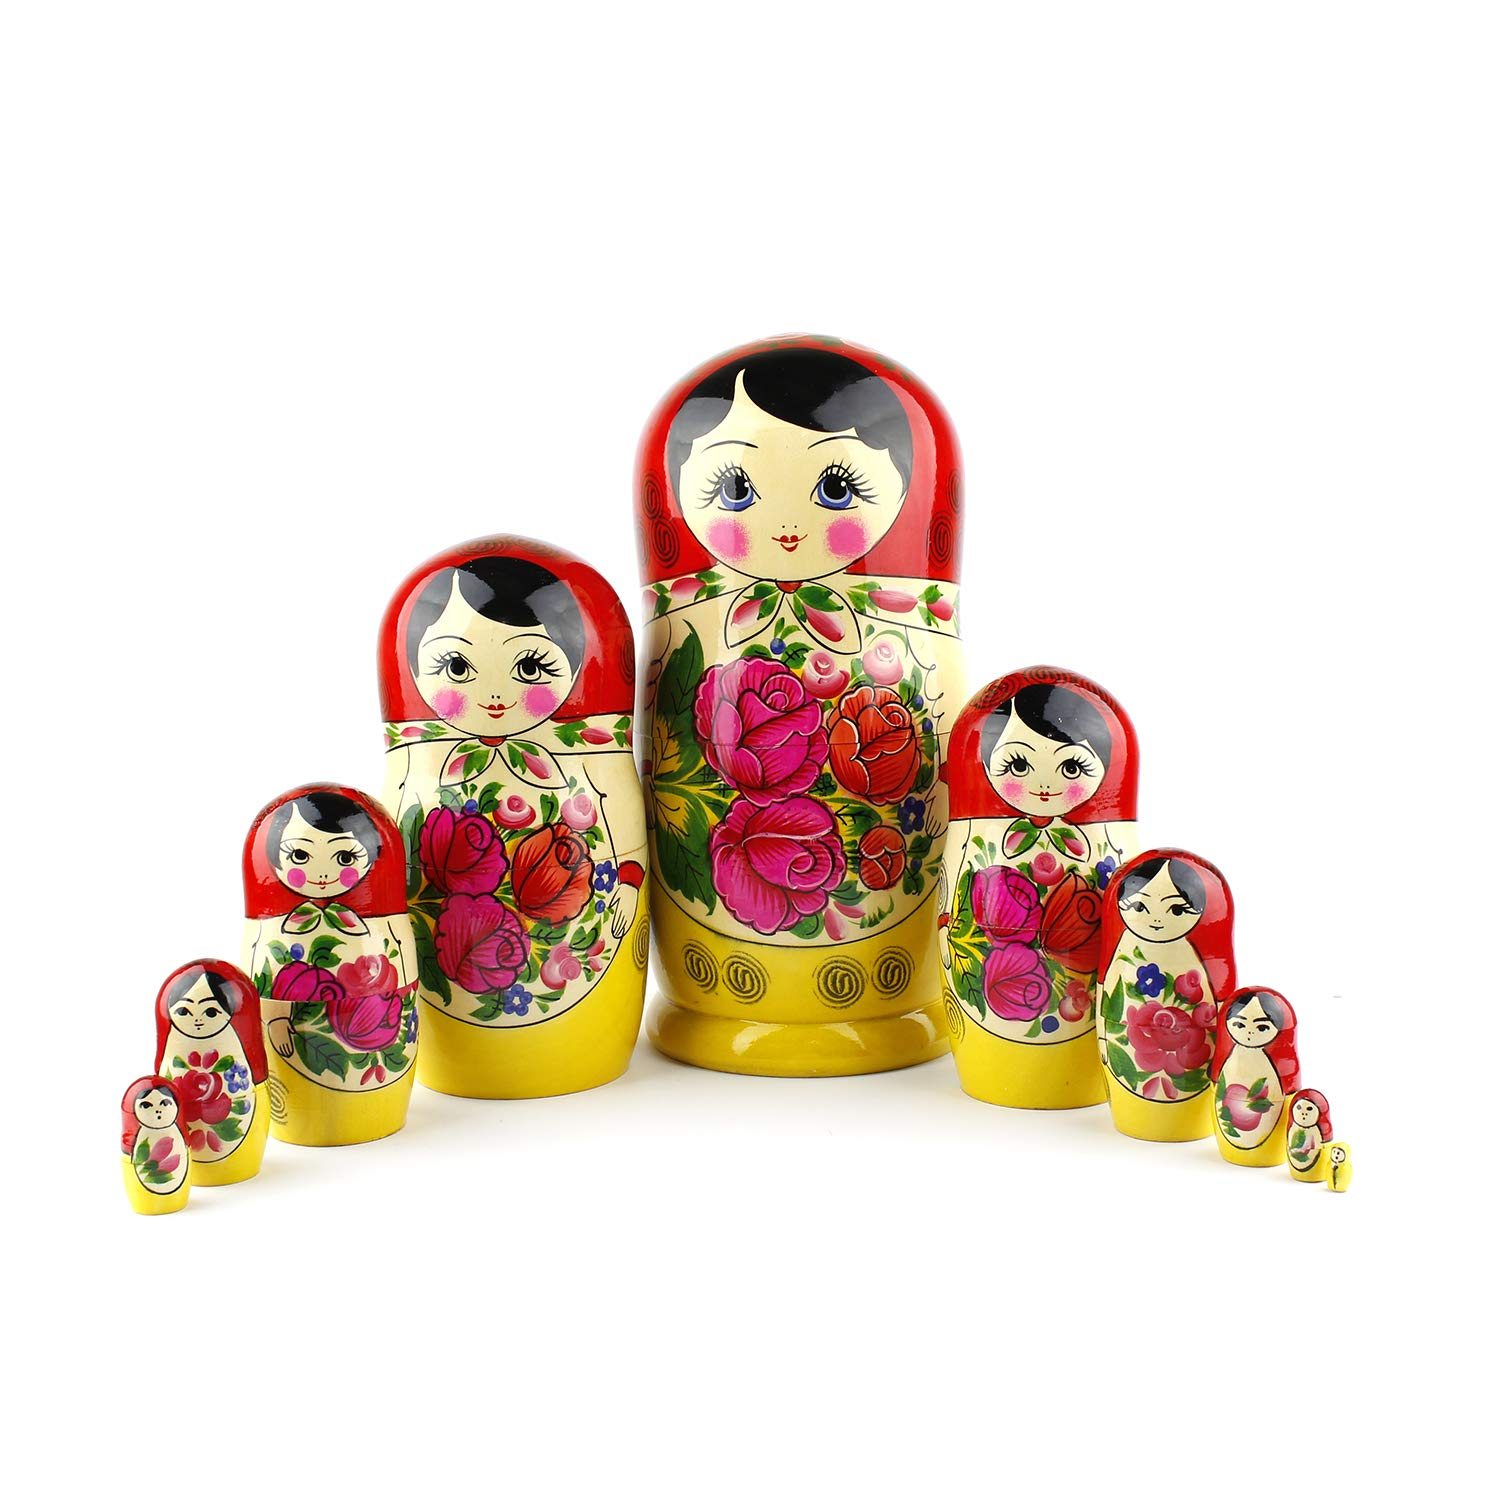 Heka Naturals Russian Nesting Dolls, 10 Traditional Matryoshka Classic Semyonov Red Style | Wooden Doll Gift Toys, Hand Made in Russia | Semyonov Red, 10 Piece, 10.6 inches by Heka Naturals